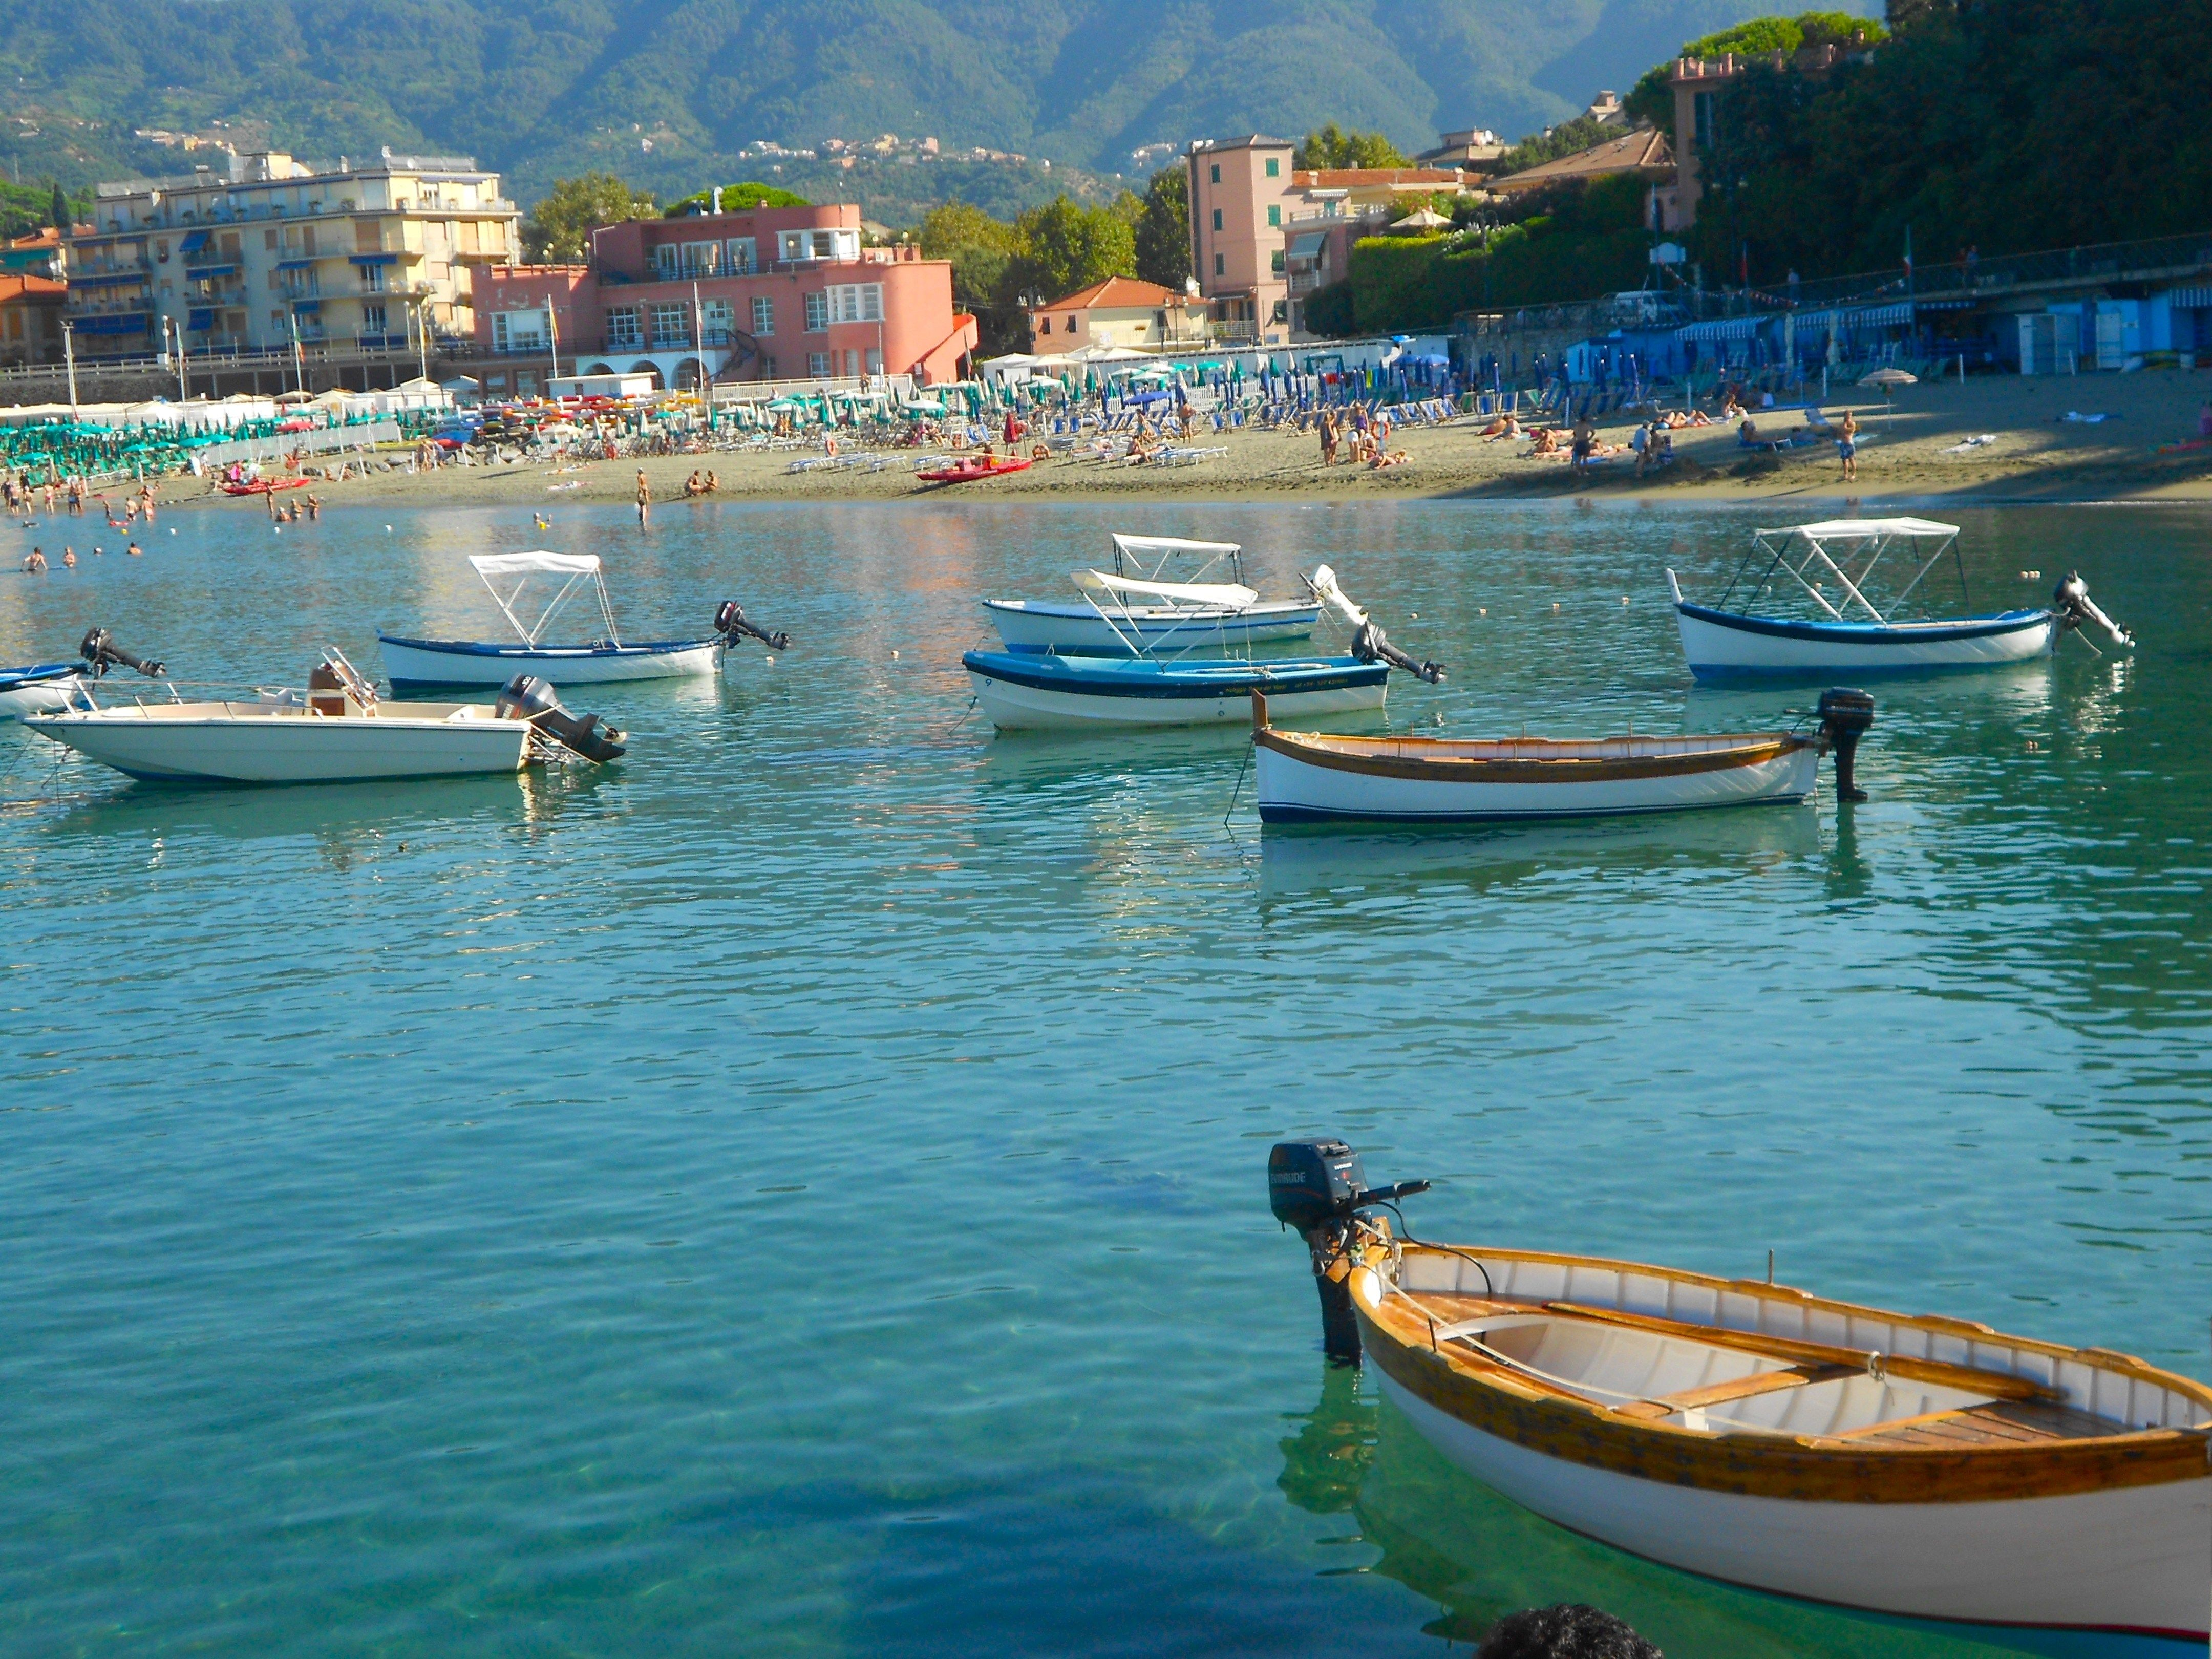 Levanto, Italy. Find out more at www.thewanderbug.com